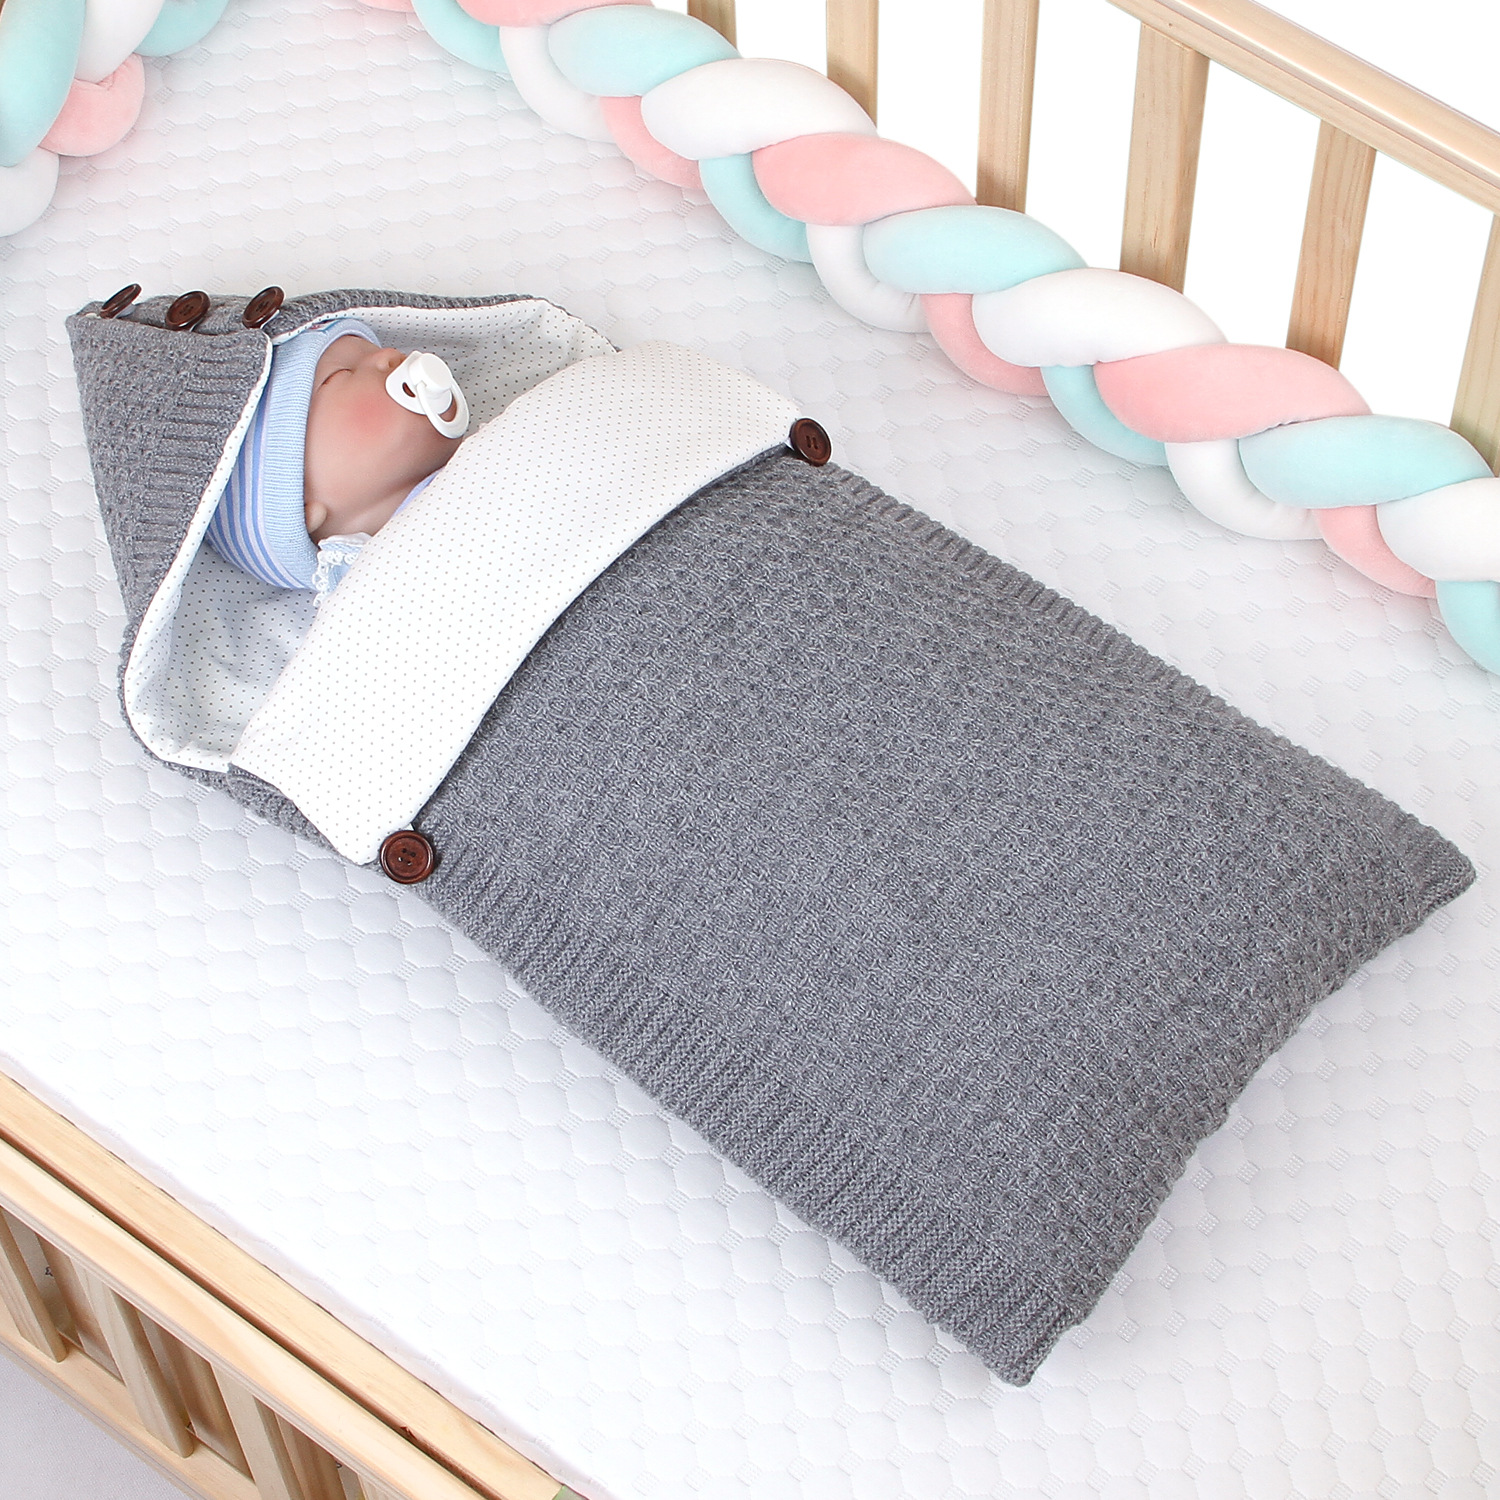 2019 New Arrival Baby Sleeping Bag Baby Swaddle Wrap Blanket Sleepsacks Thickened Sleeping Bag Newborns Bedding Quilt